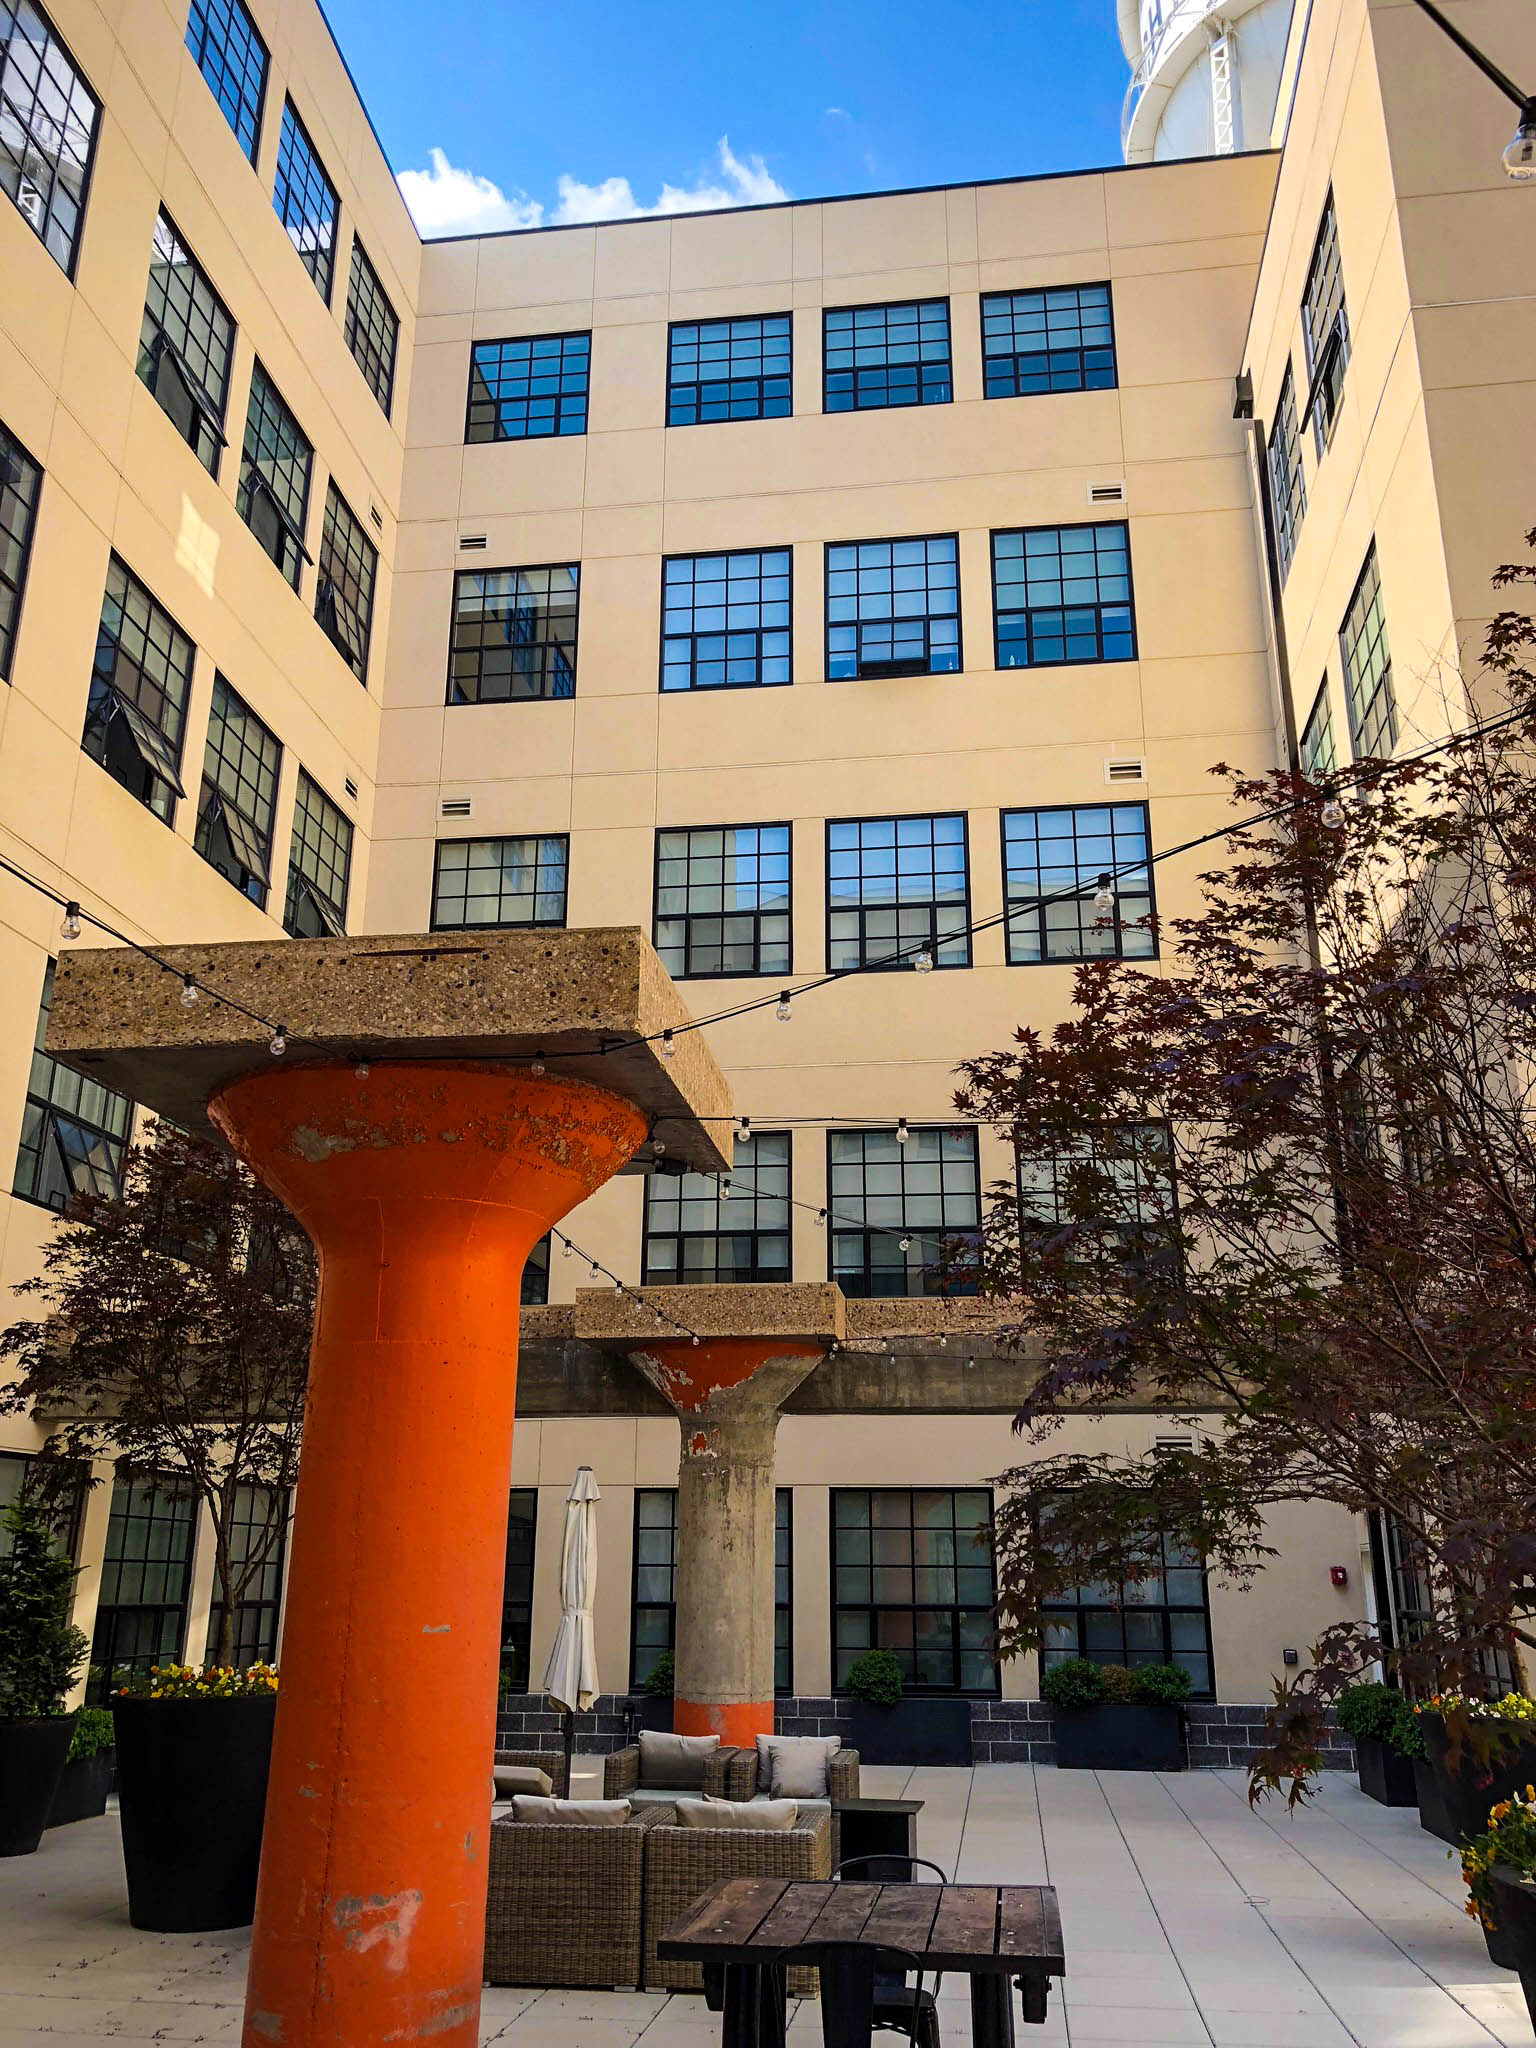 Hect Warehouse - Right side view of office building with orange pillars